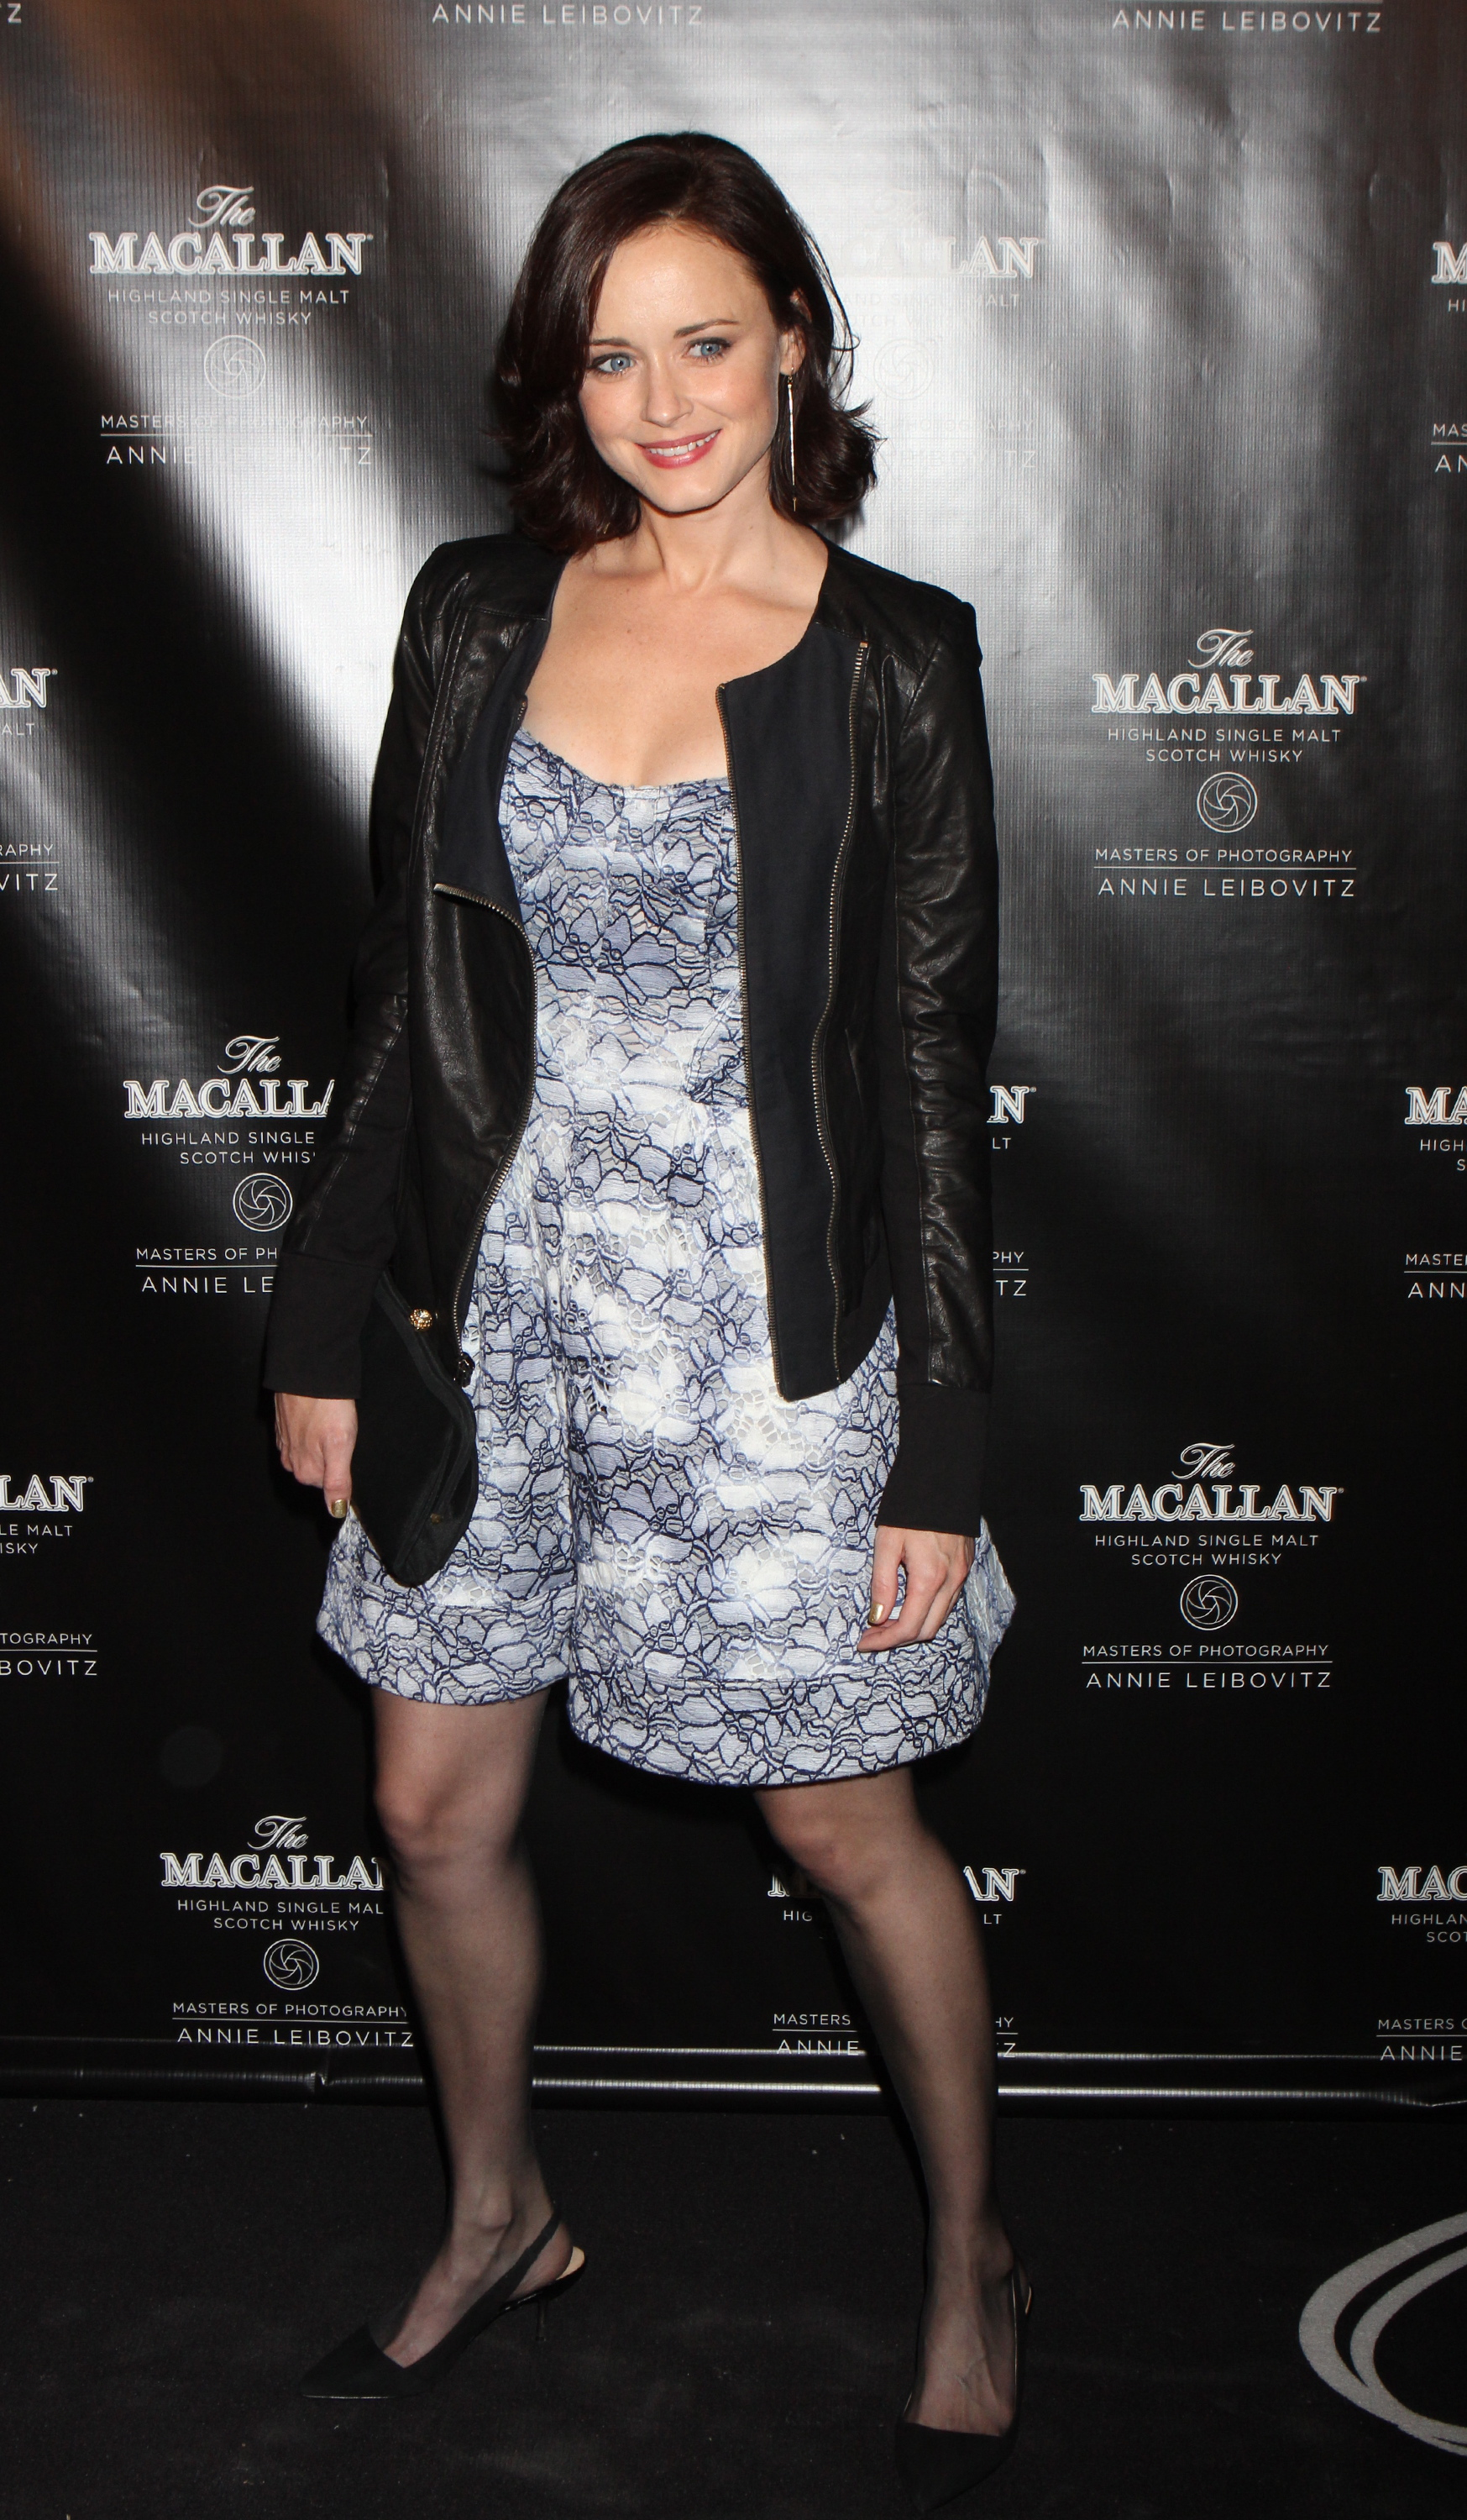 Alexis Bledel - The Macallan Masters Of Photography Series Launch - NYC - 101012_002.jpg